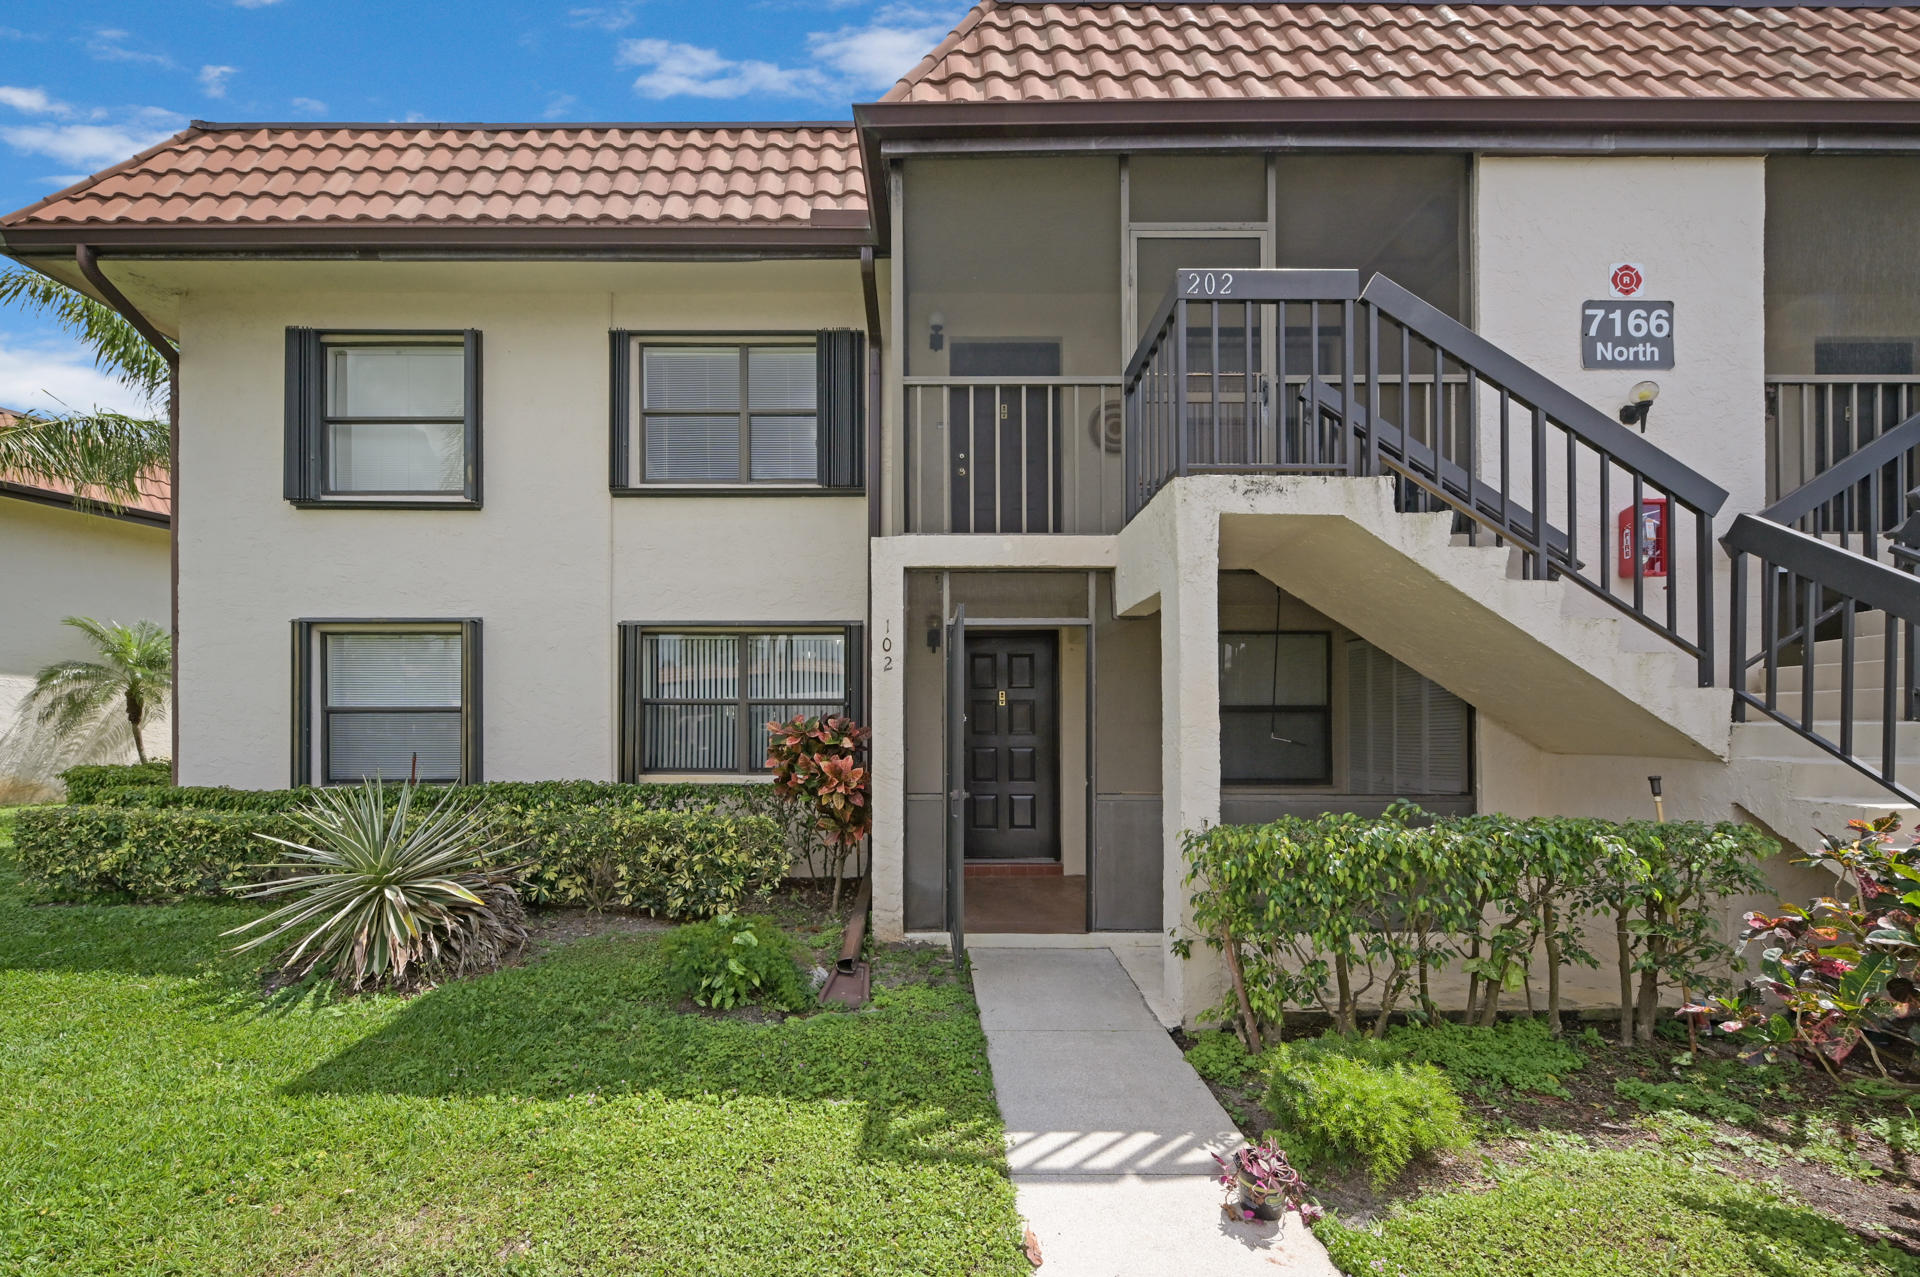 7166 Golf Colony Court 102 Lake Worth, FL 33467 small photo 2